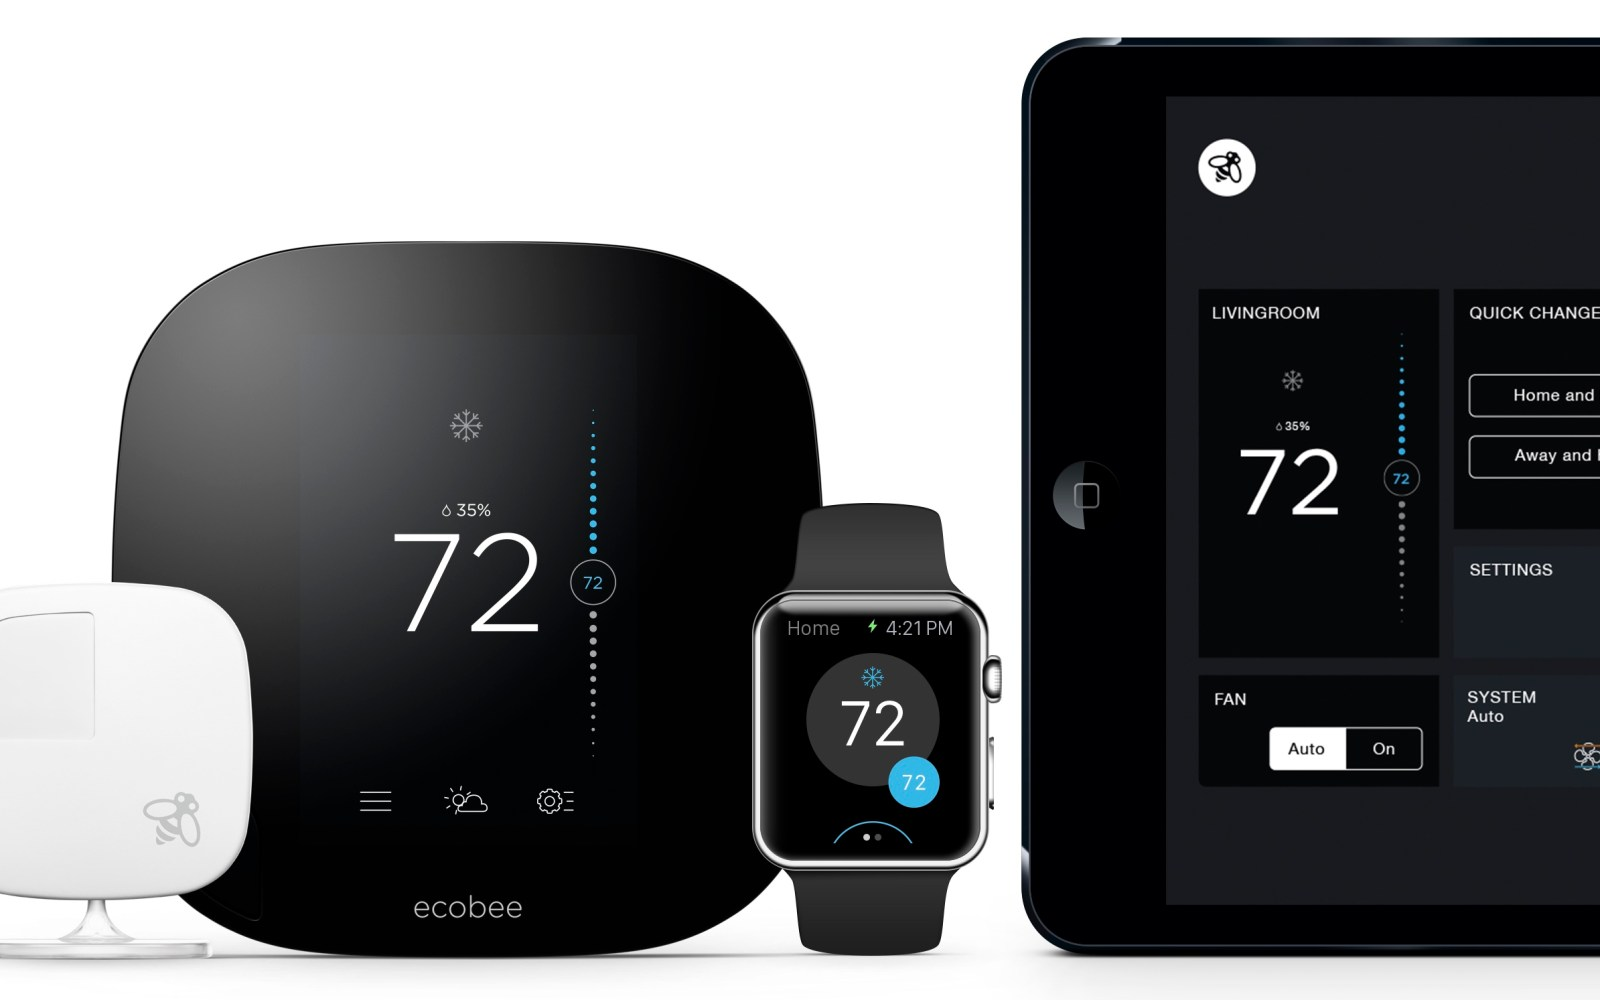 No need to wait, the HomeKit-enabled Ecobee3 Smart Thermostat w/ Sensor just hit Black Friday pricing: $200 (Reg. $249)